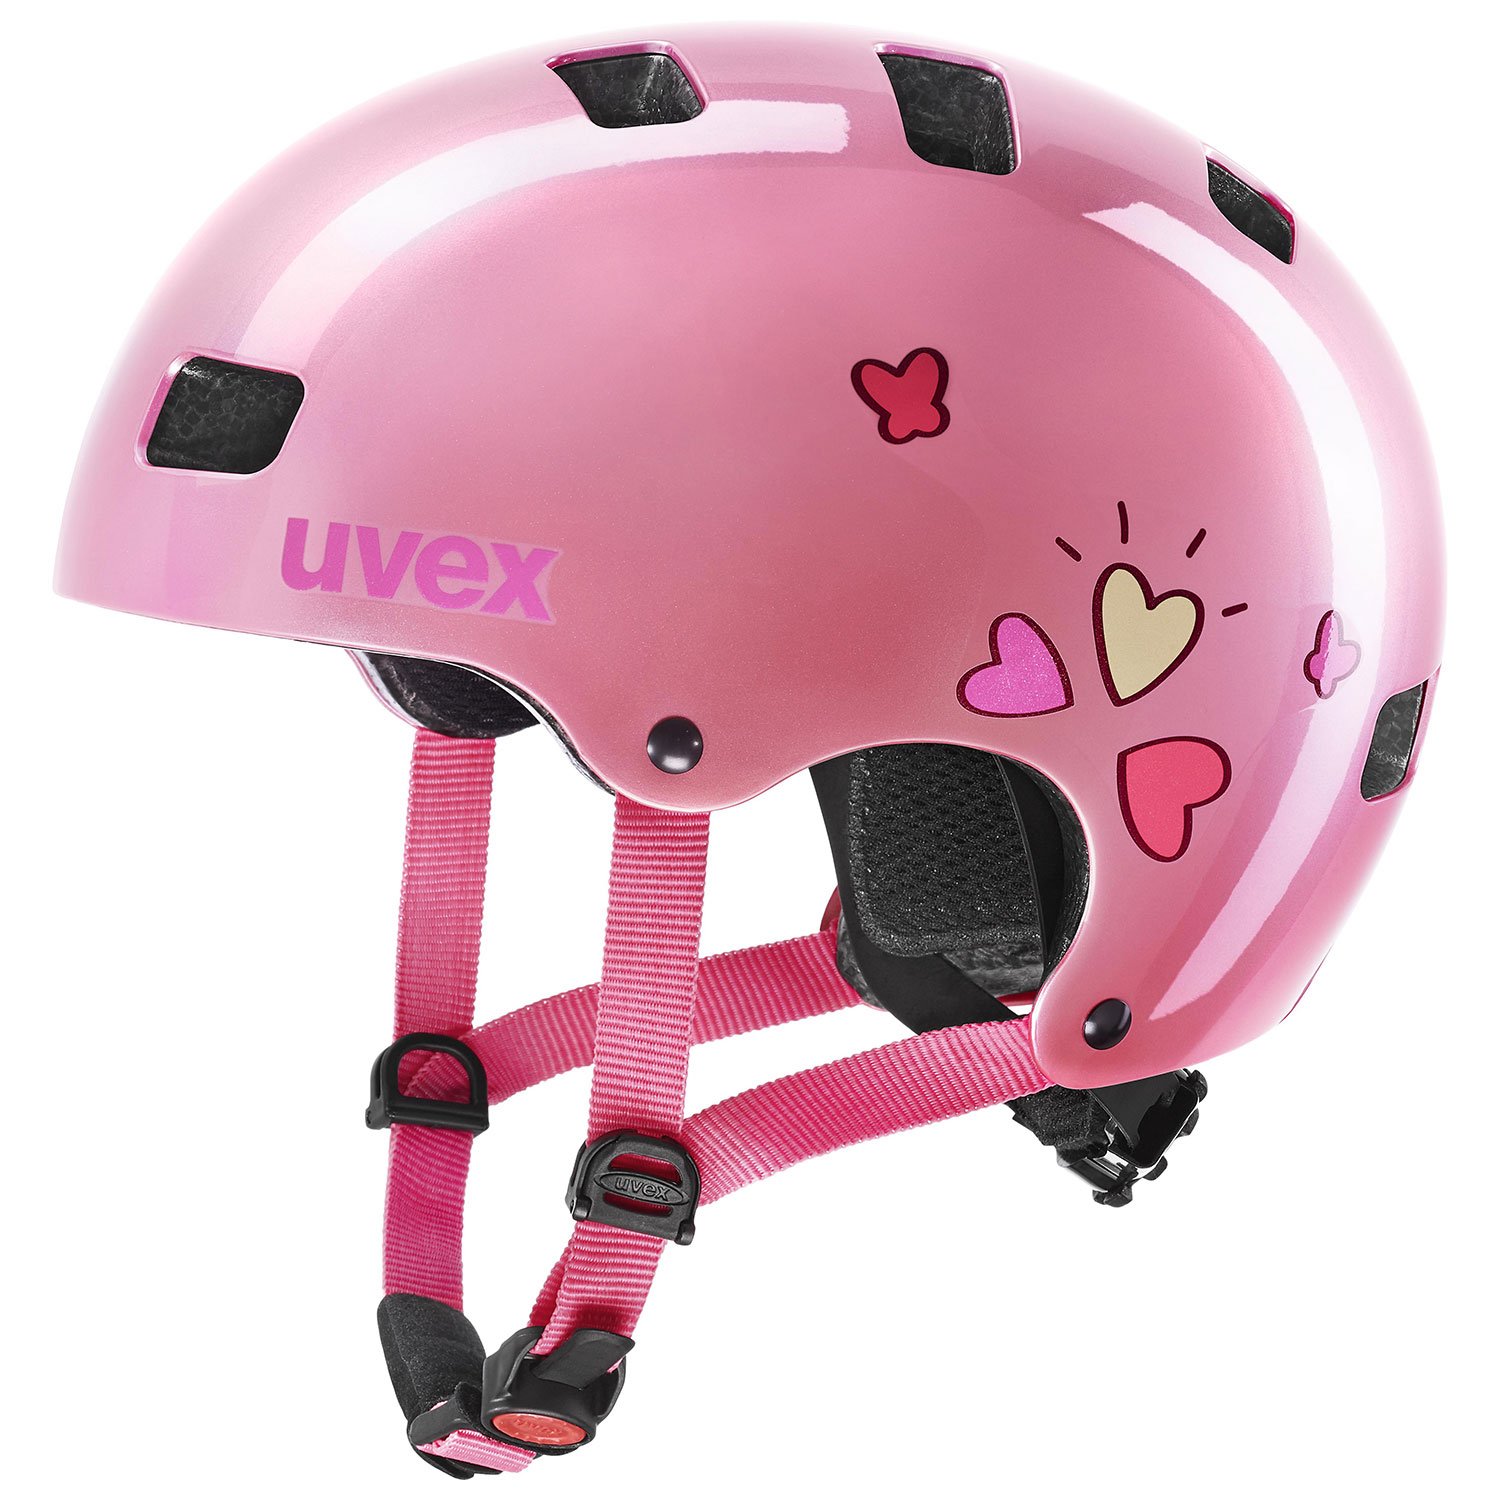 2021 UVEX HELMA KID 3, PINK HEART 55-58